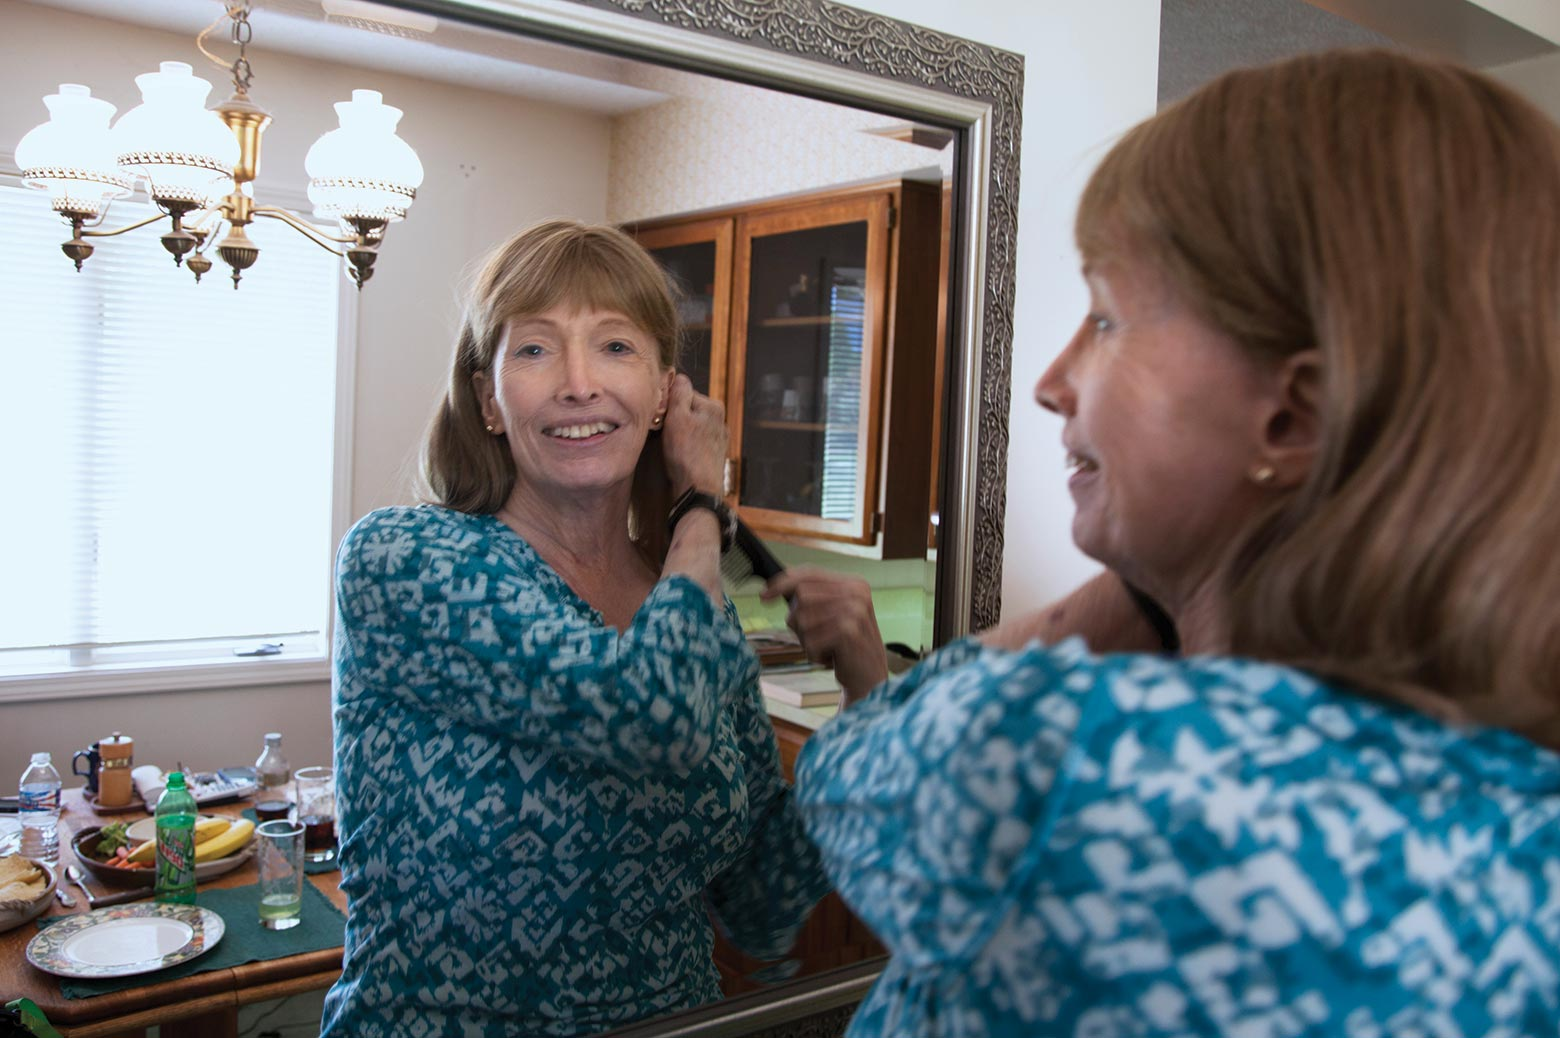 A woman brushes her hair while looking in a mirror.